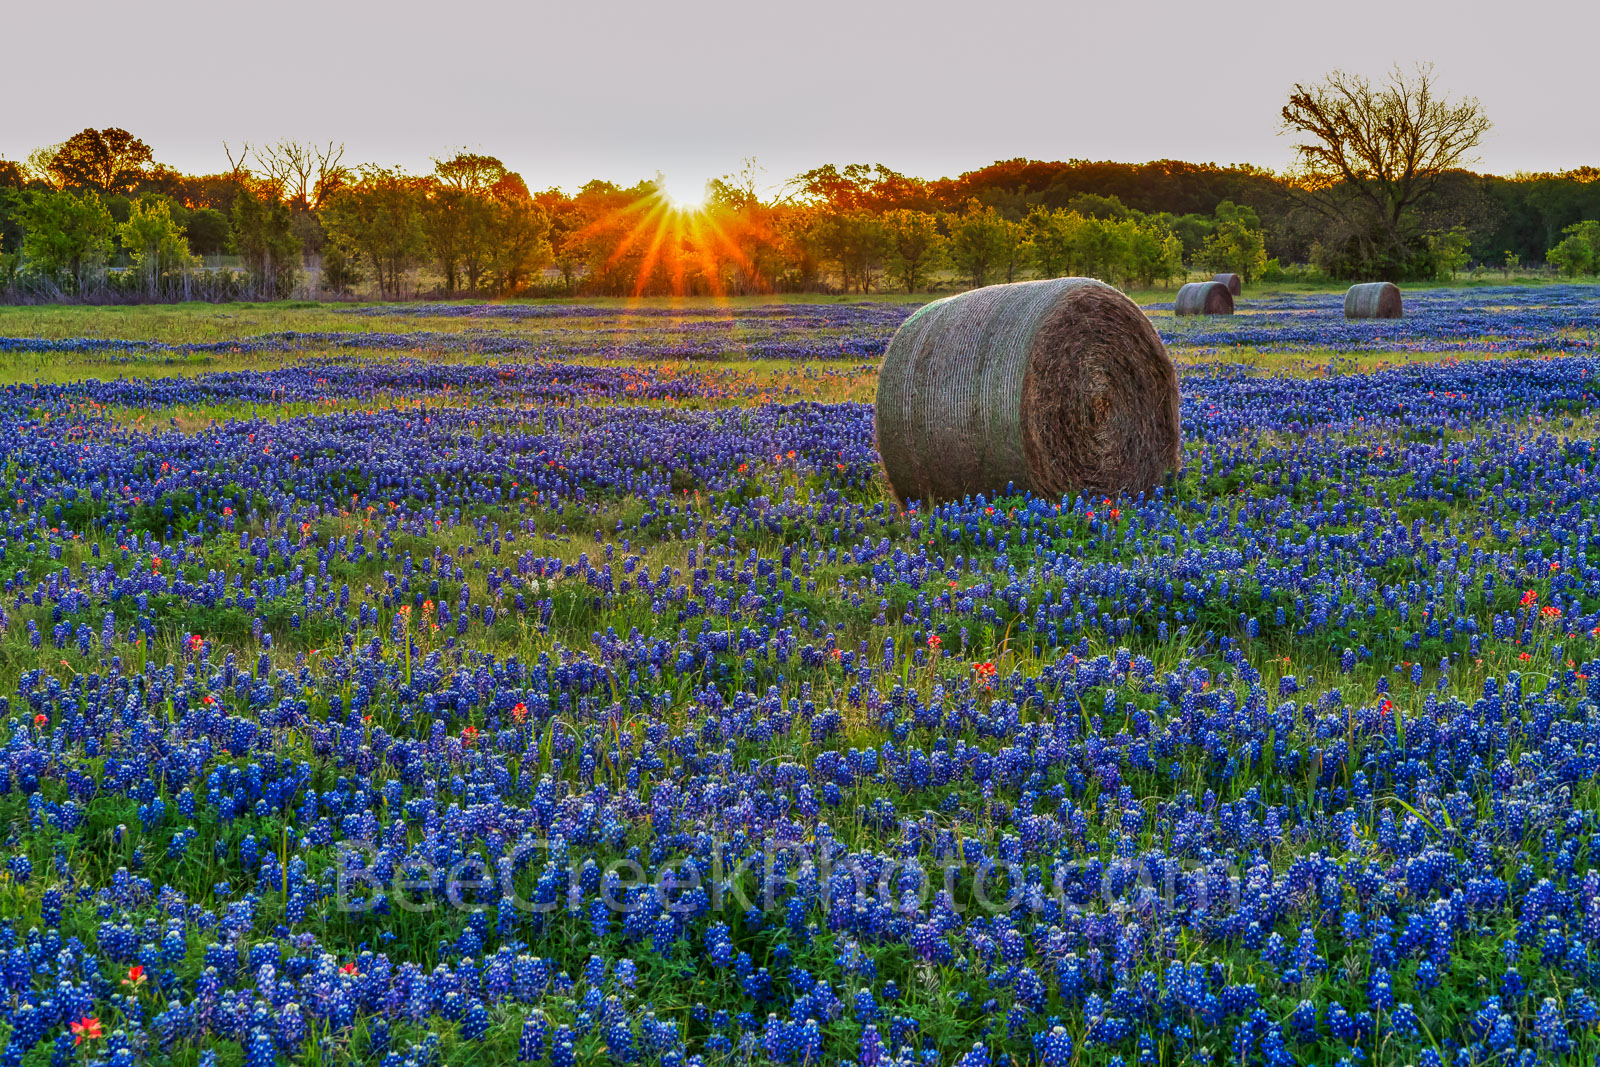 Texas bluebonnets, hay bales, indian paintbrush, rural texas, field of haybales, wildflowers, farm, sunrise, Texas hill country, Sunrise Over Bluebonnets, wildflower landscape, , photo